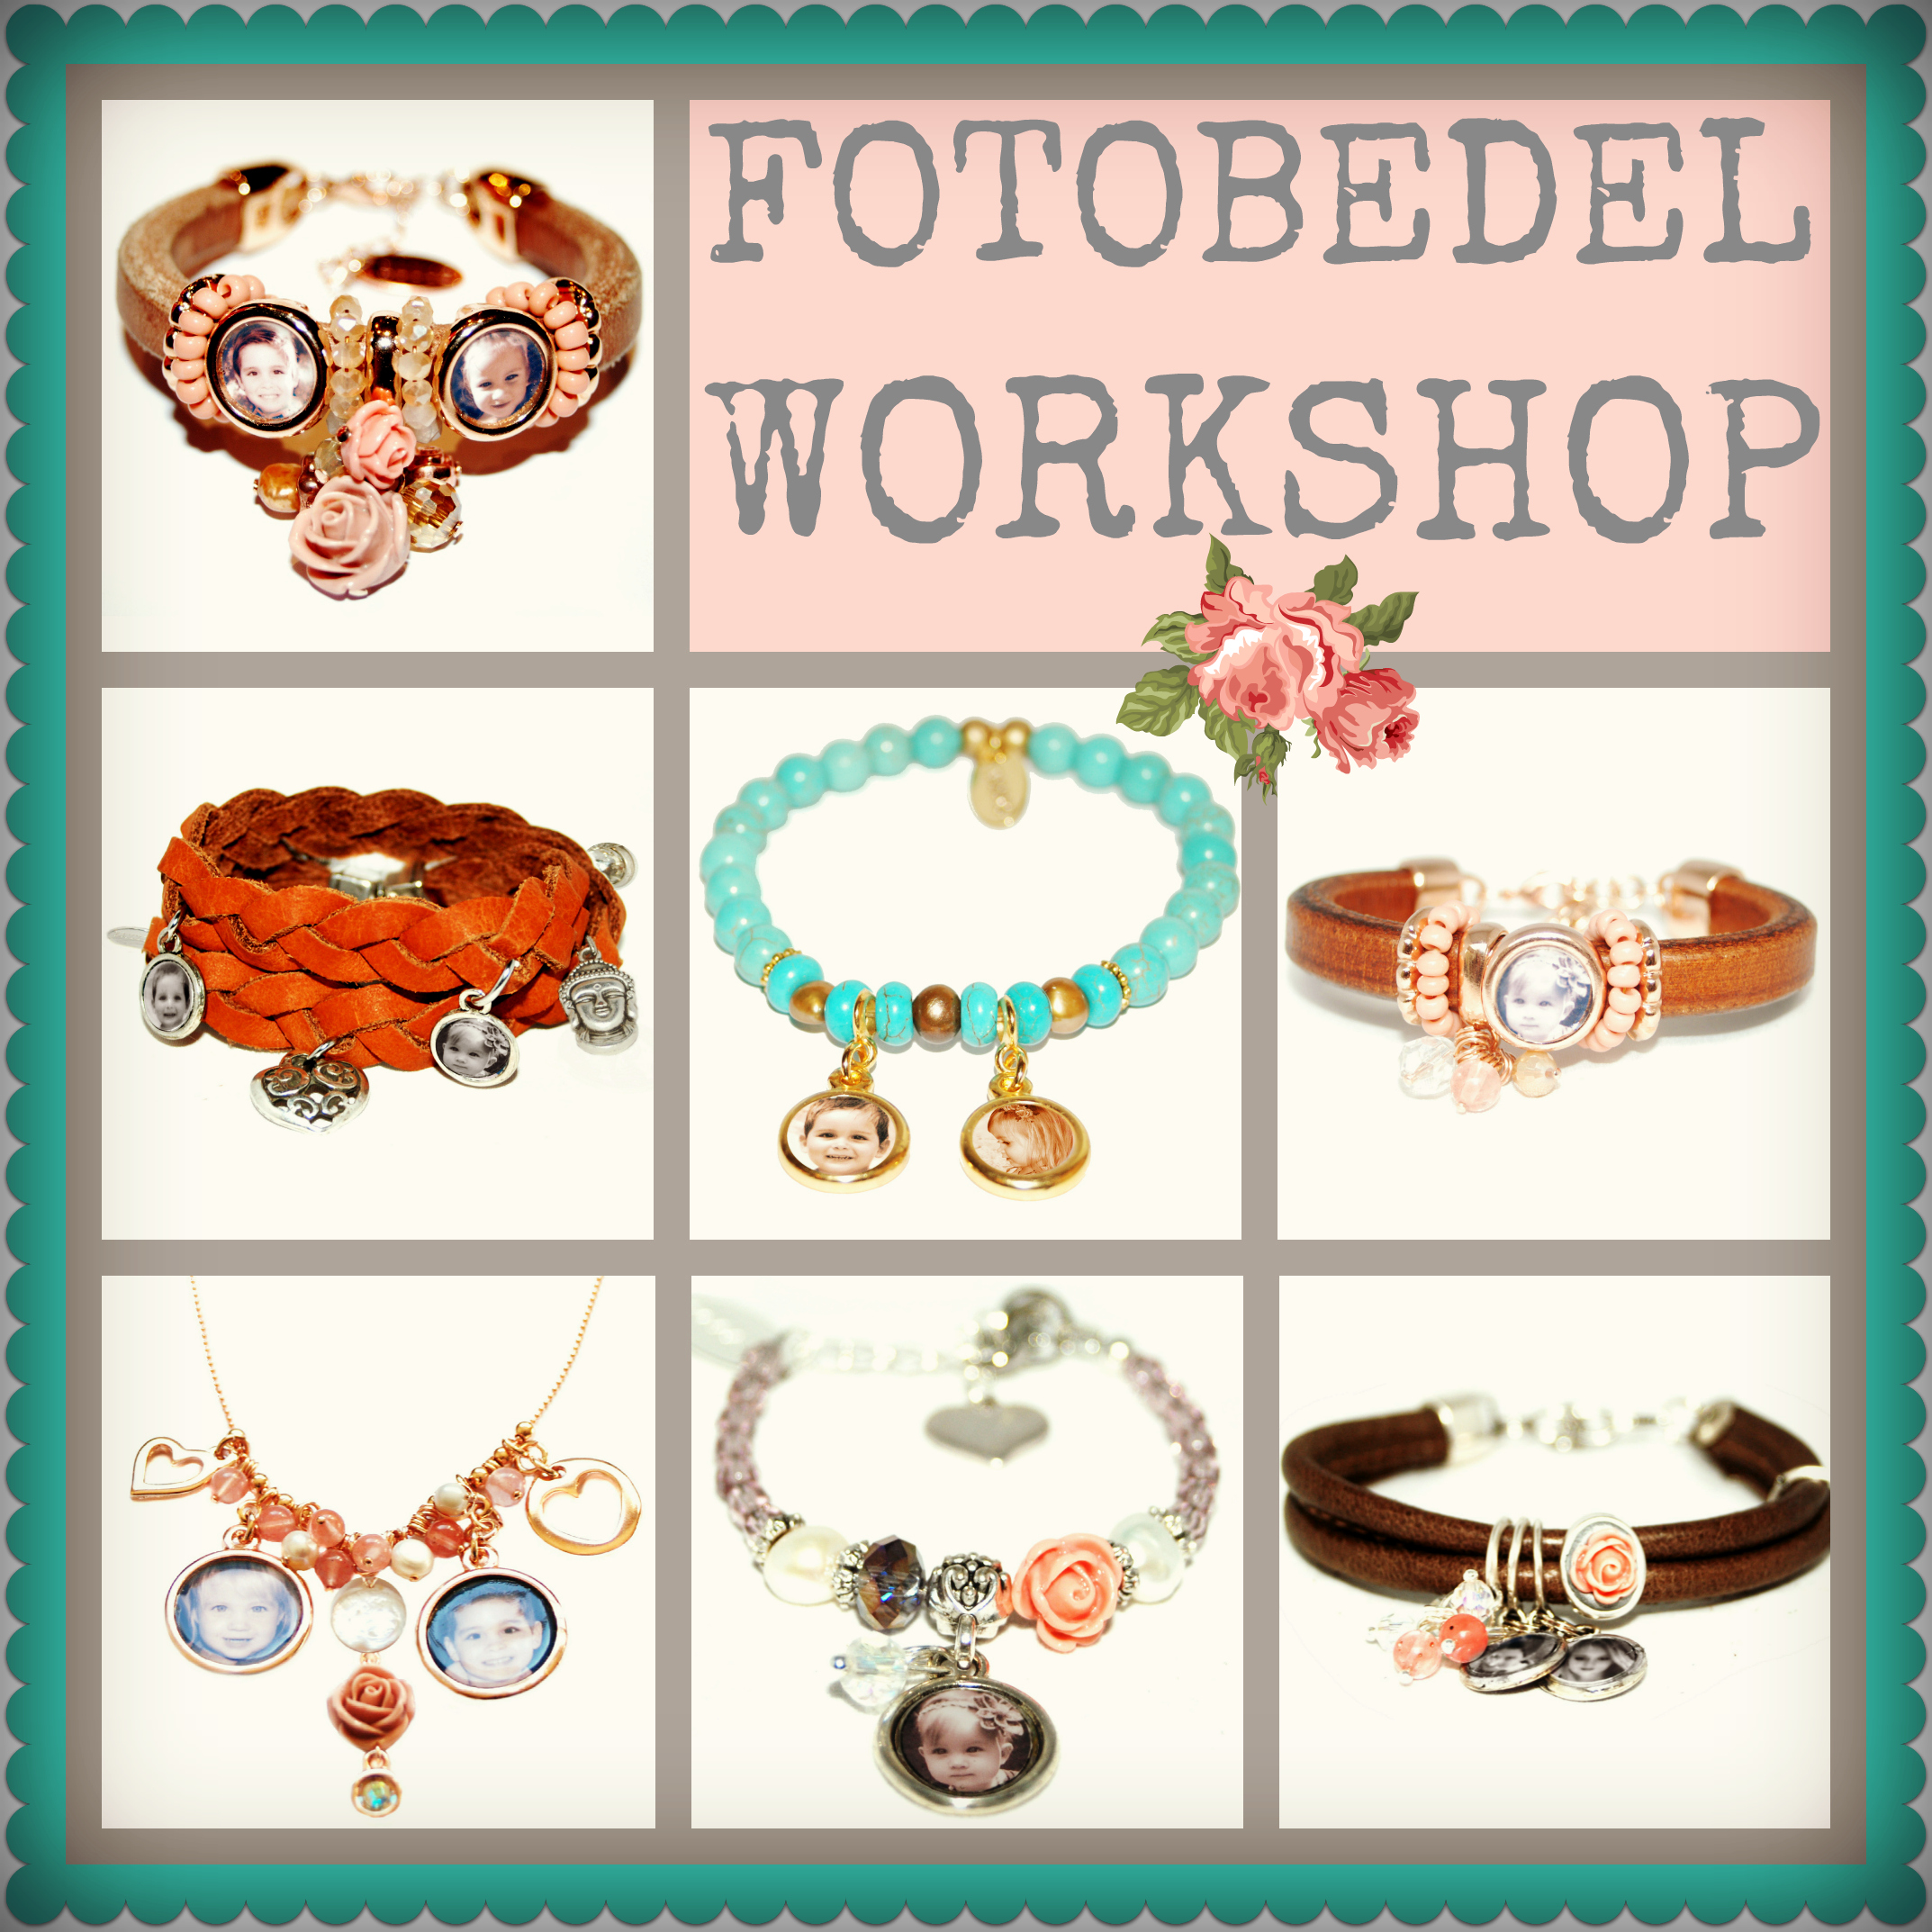 Fotobedel workshop